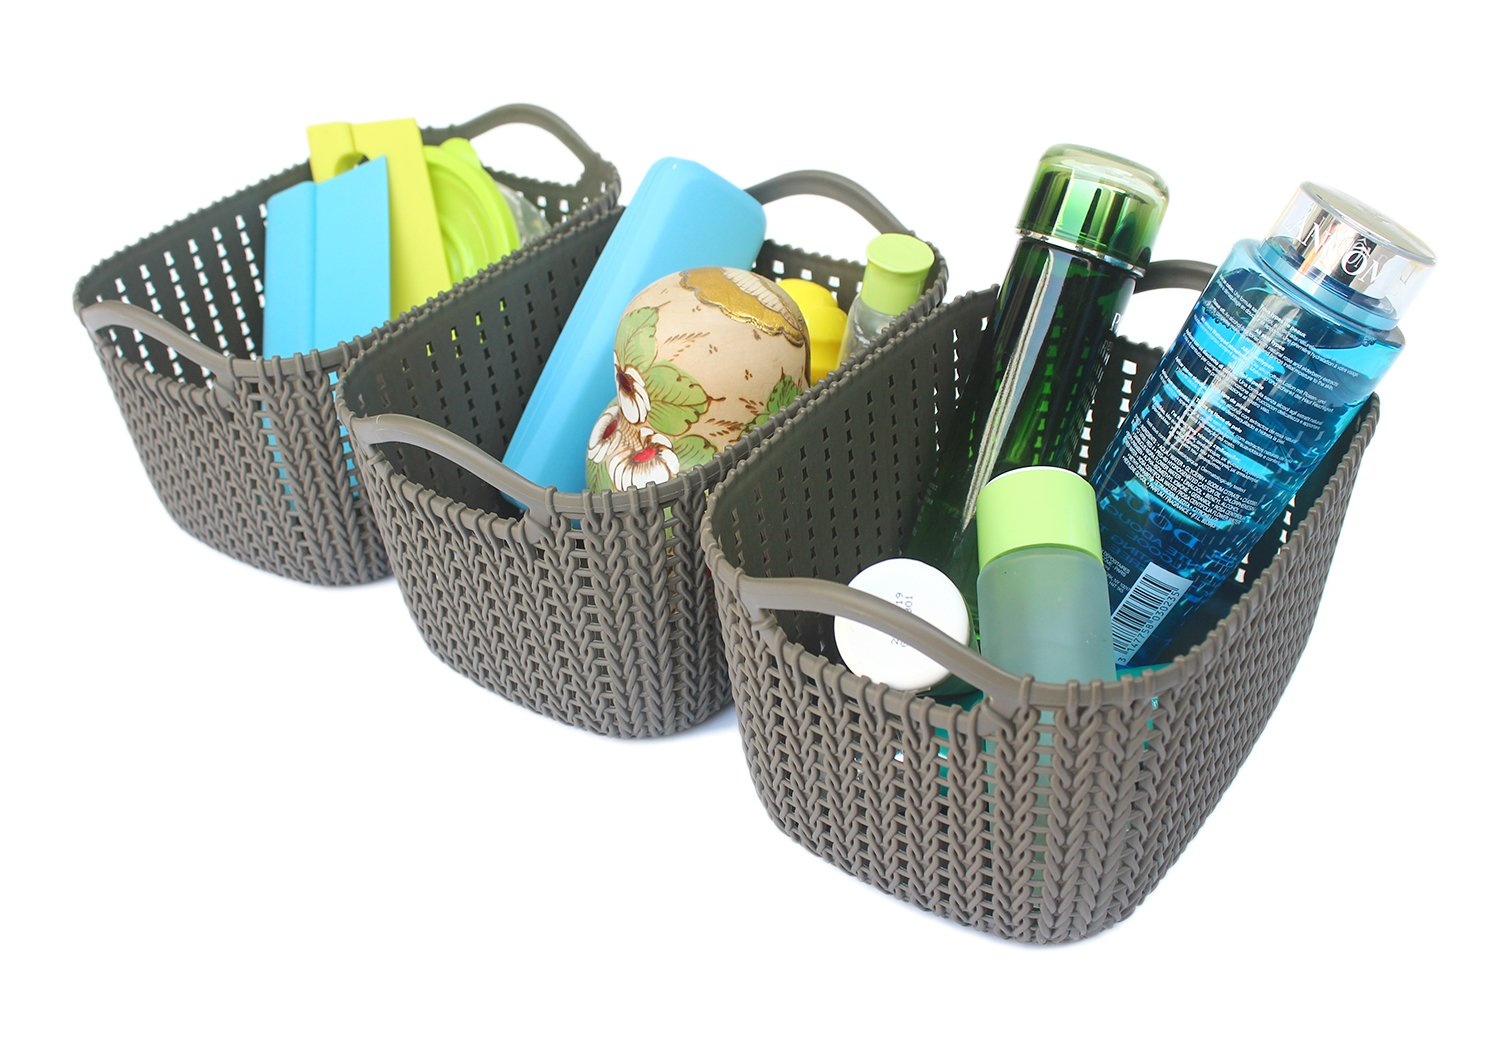 Honla Weaving Rattan Plastic Storage Baskets/Bins Organizer with Handles,Set of 3,Dark Gray